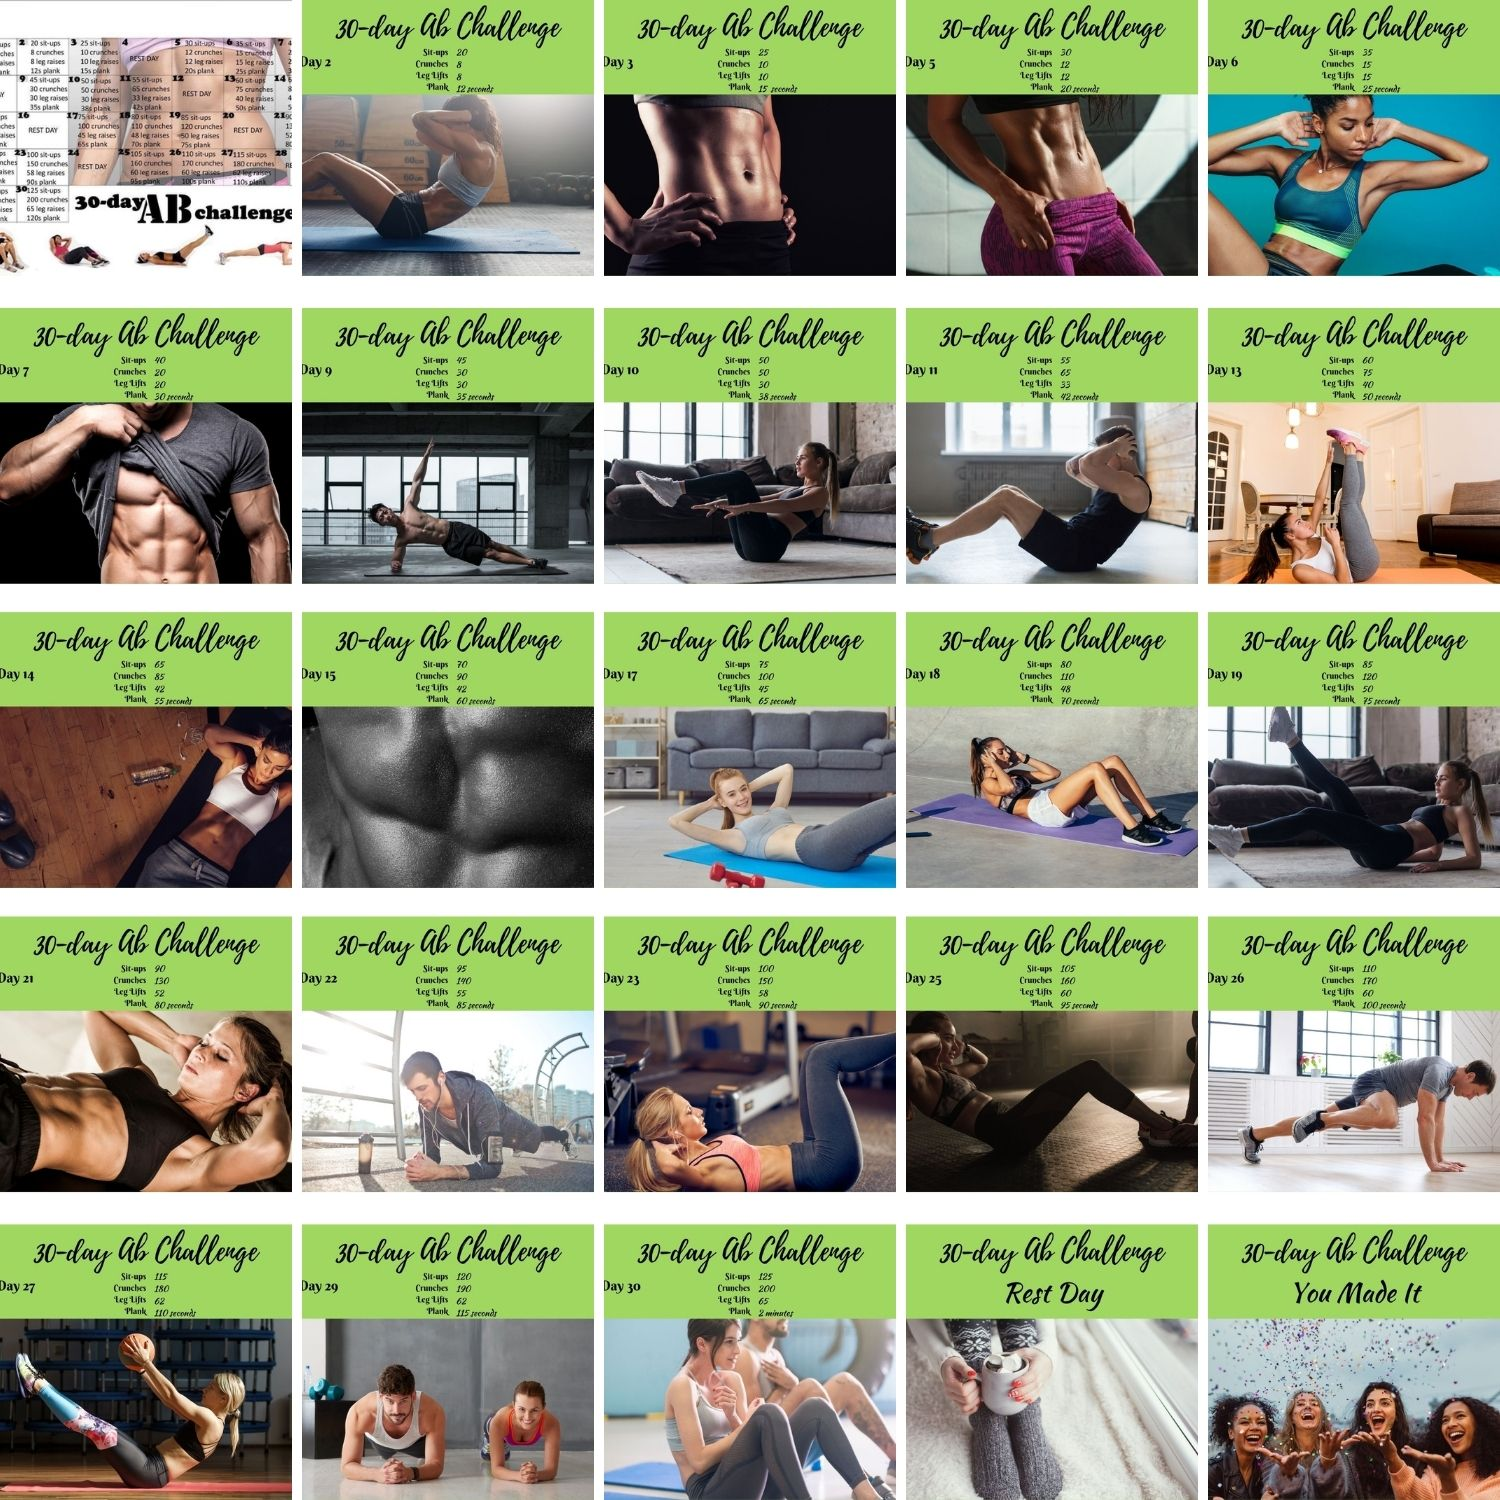 30-day ab challenge, planks, crunches, leg lifts, sit ups, obliques, superman hold, lower back strength, core strength, strengthen your core